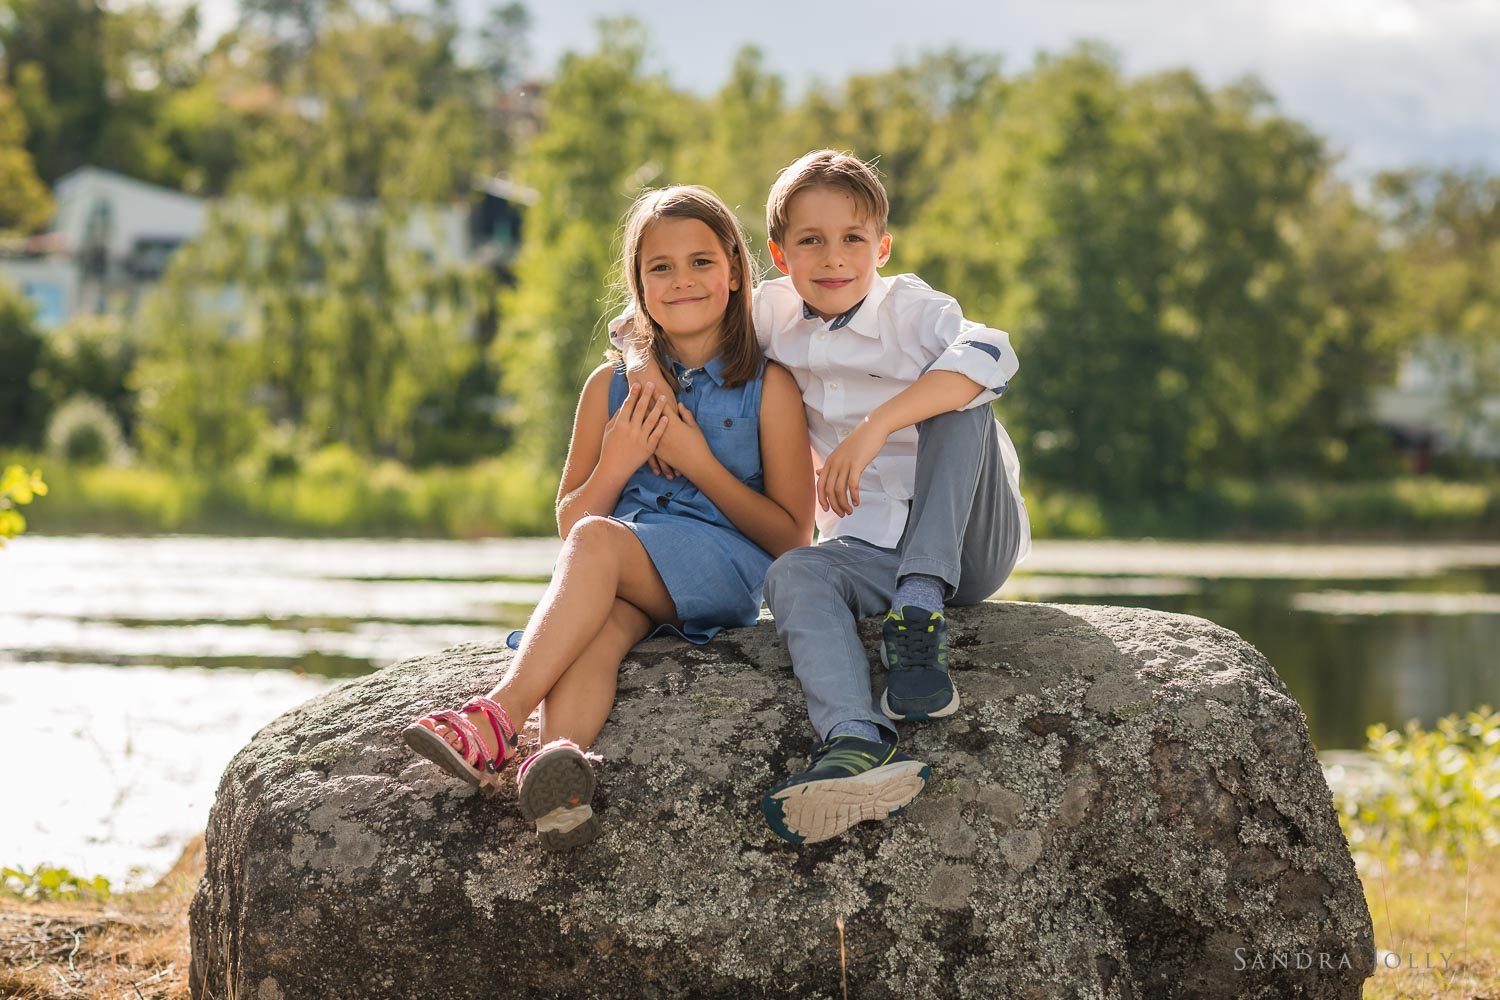 stockholm-sibling-photo-session-by-family-photographer-sandra-jolly.jpg